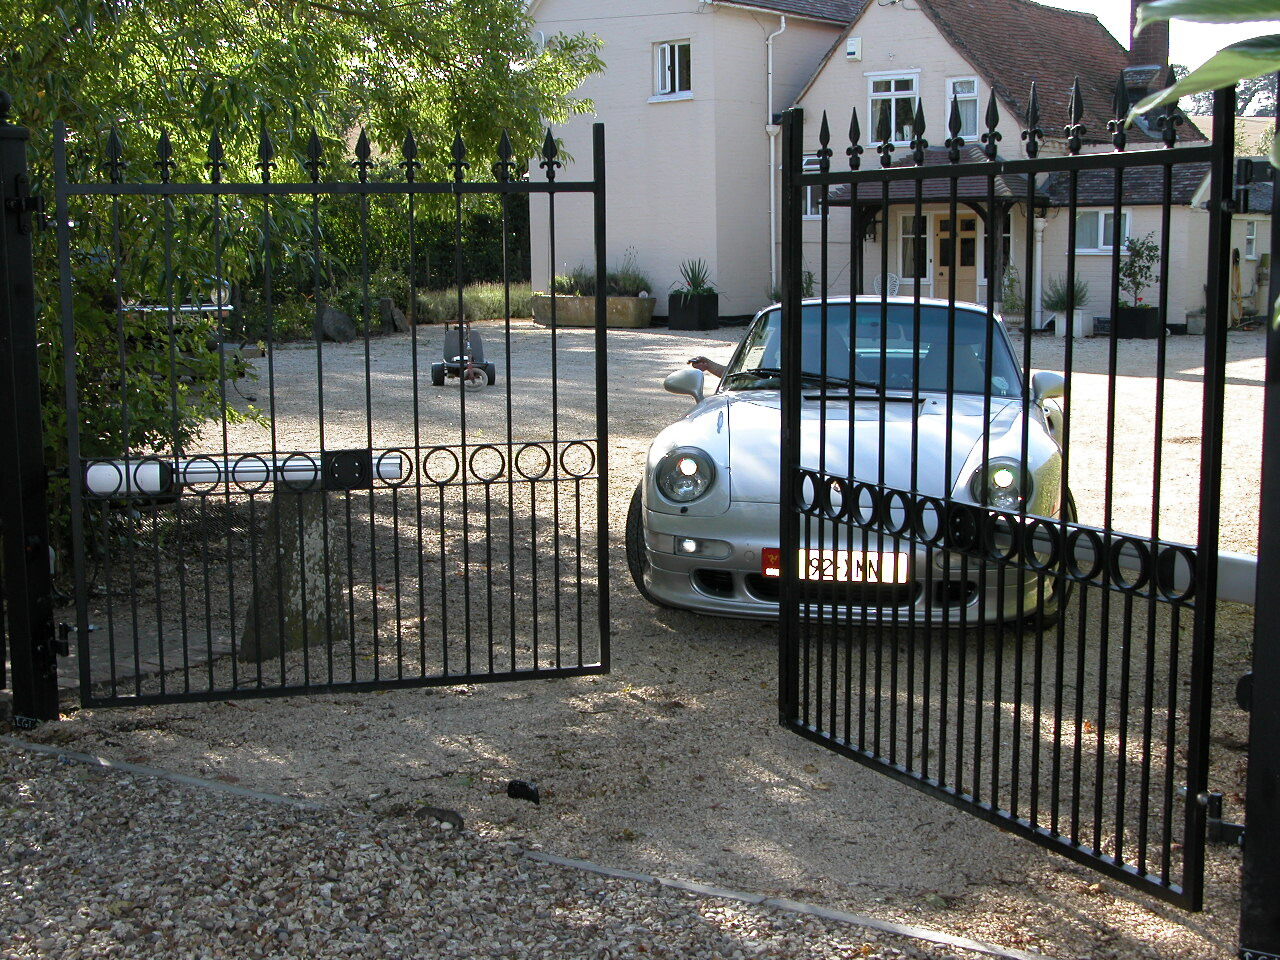 993-and-gates-2